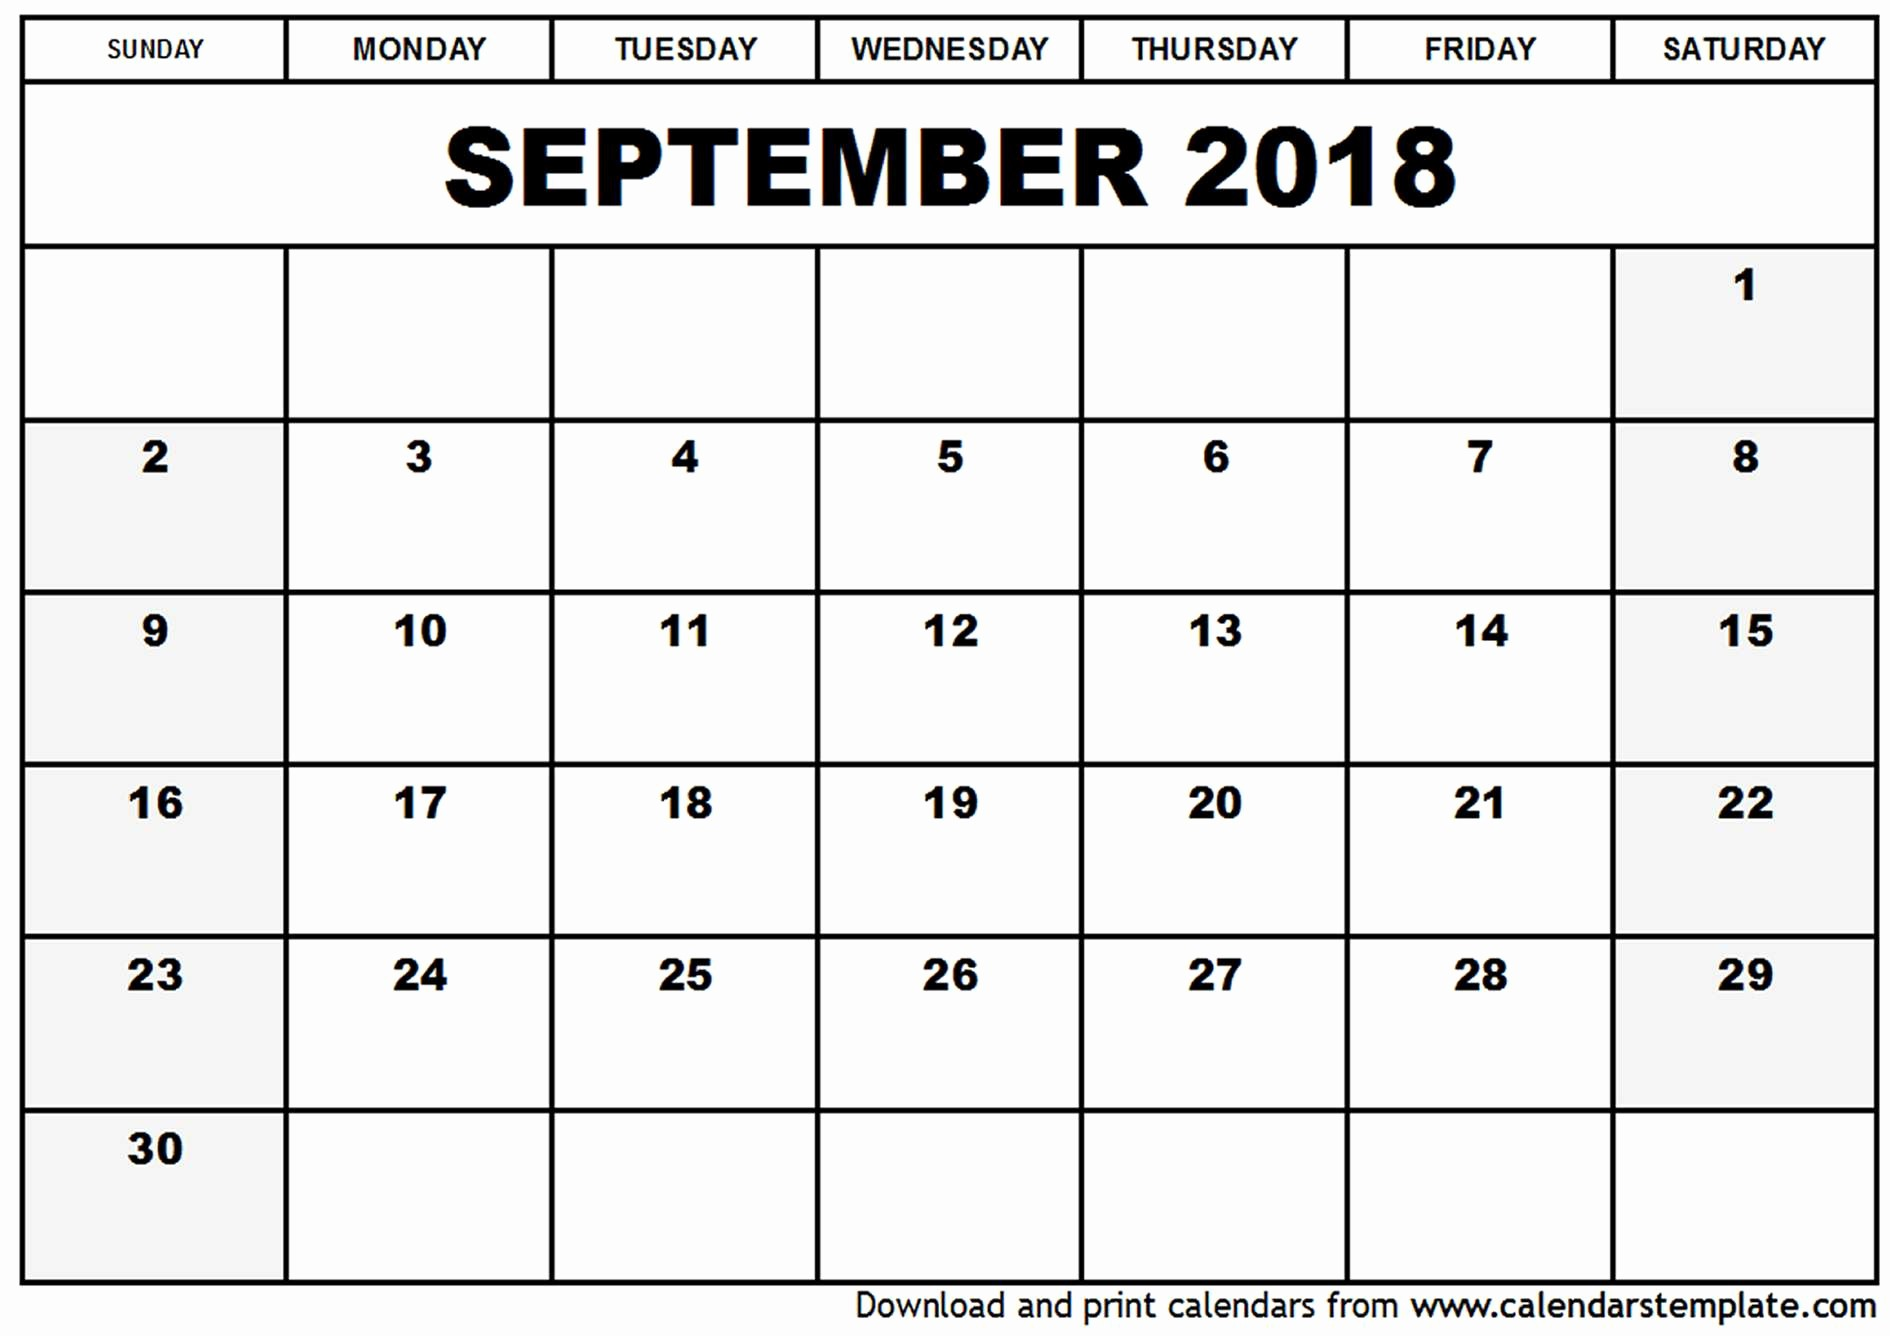 September 2017 Printable Calendar Word Unique September 2018 Calendar Word